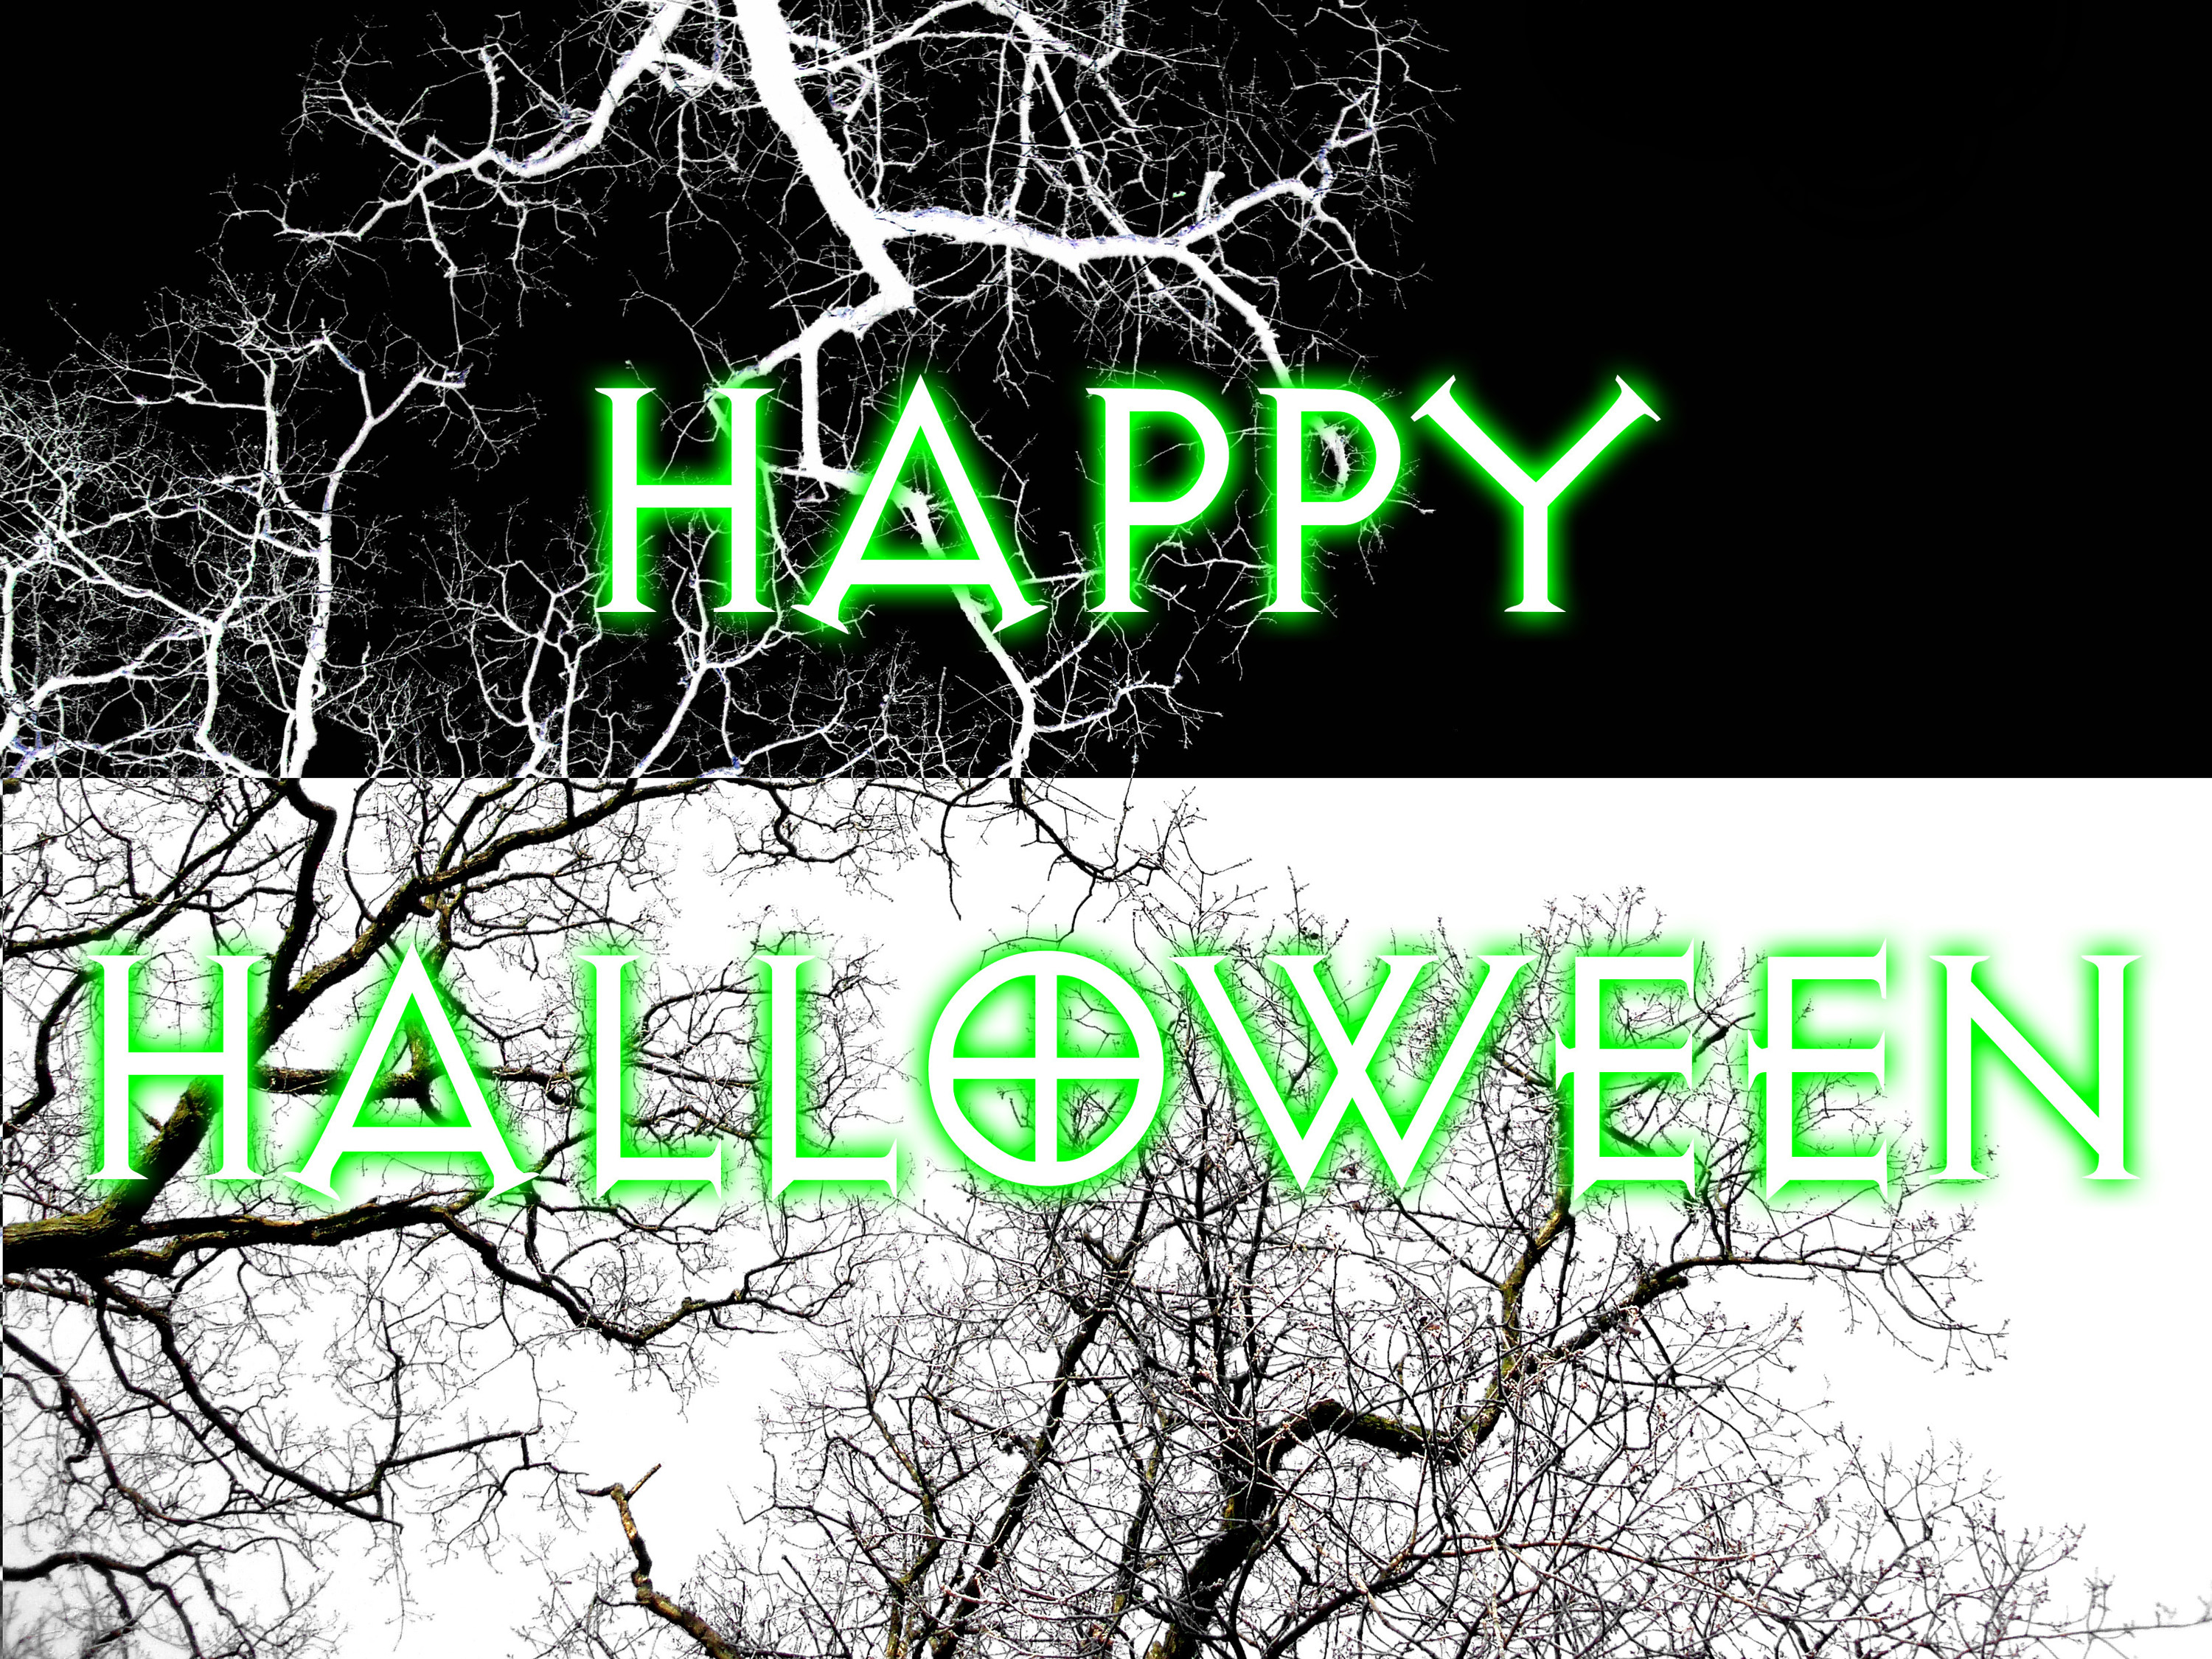 creepy black and white / negative tree with text 'happy halloween'